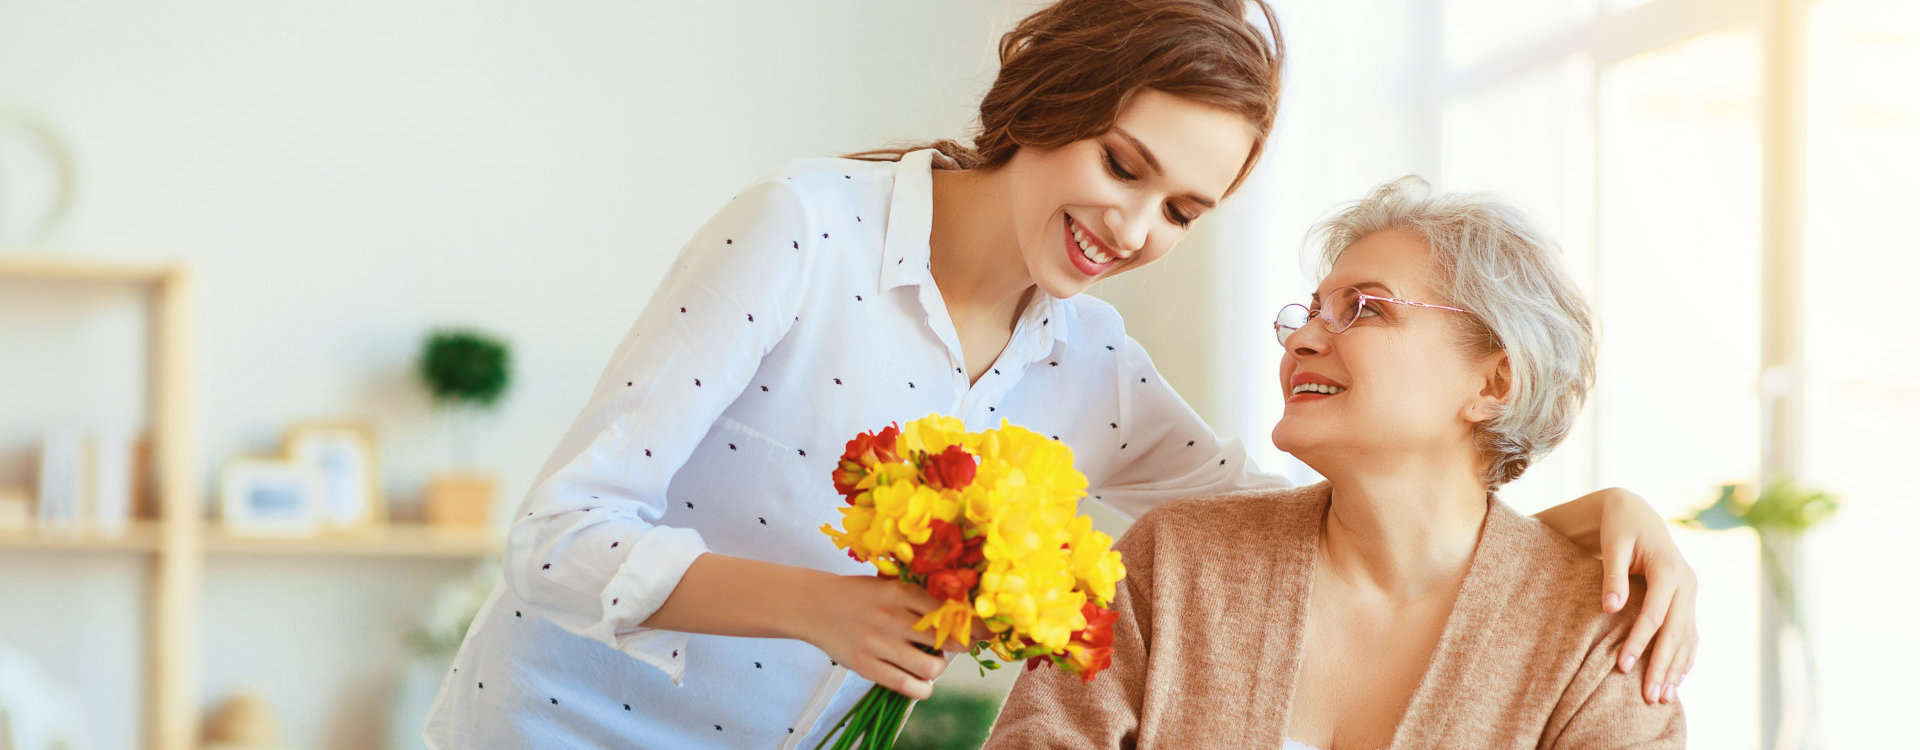 lady gives flower to elder woman